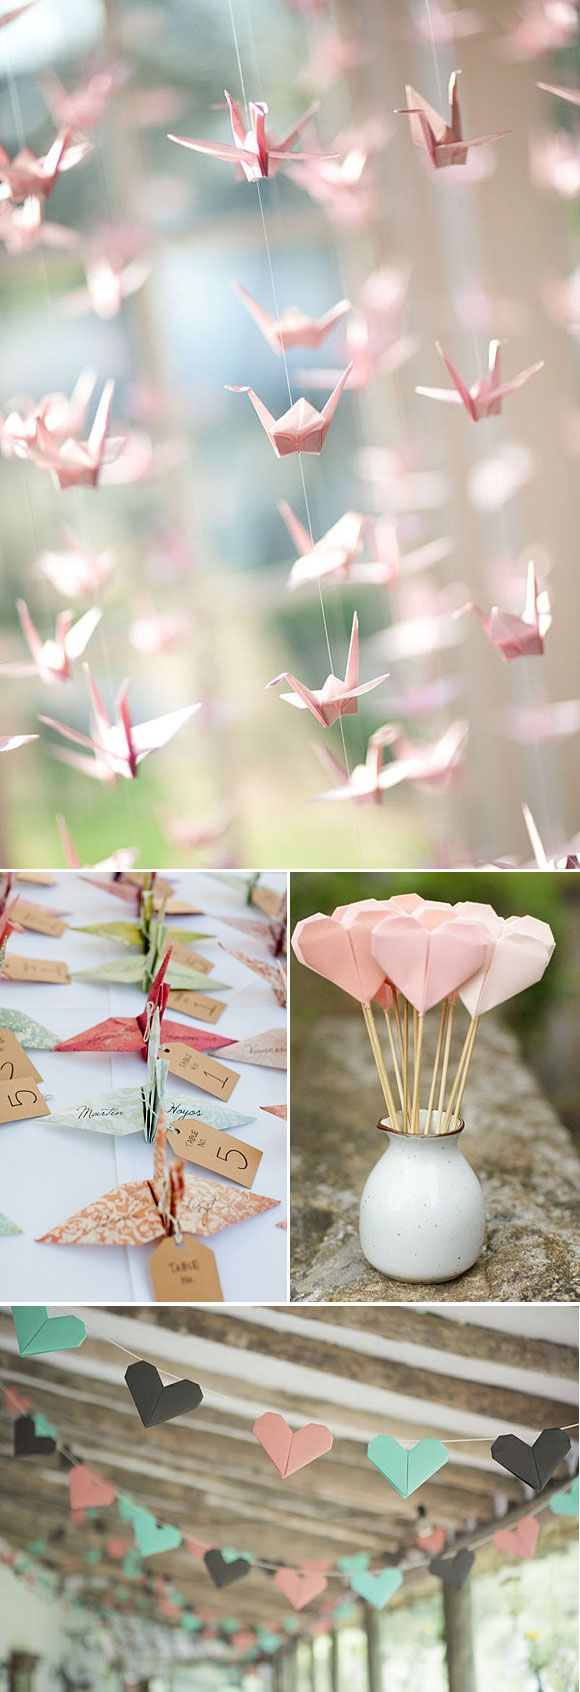 #DIY #Origami #Wedding